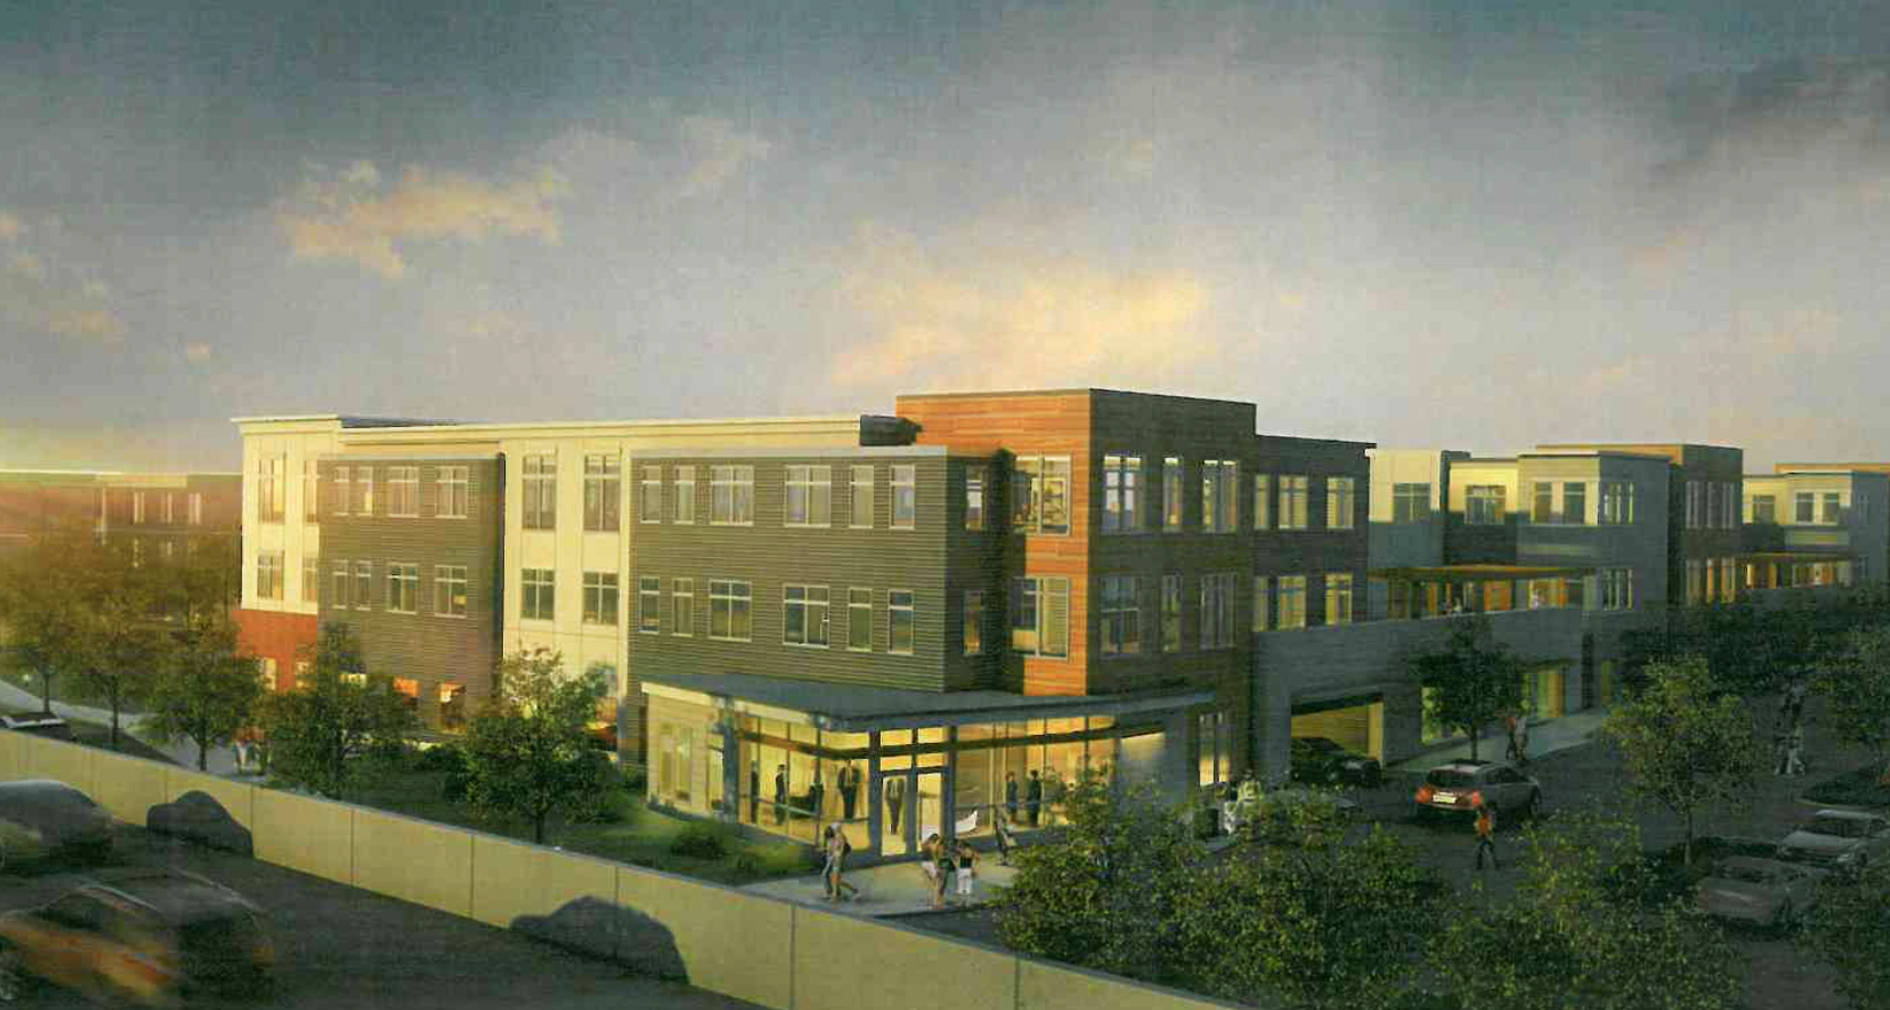 60 70 cross street stop and shop east somerville mcgrath highway young construction residential development project vhb cube3 studio architectural rendering